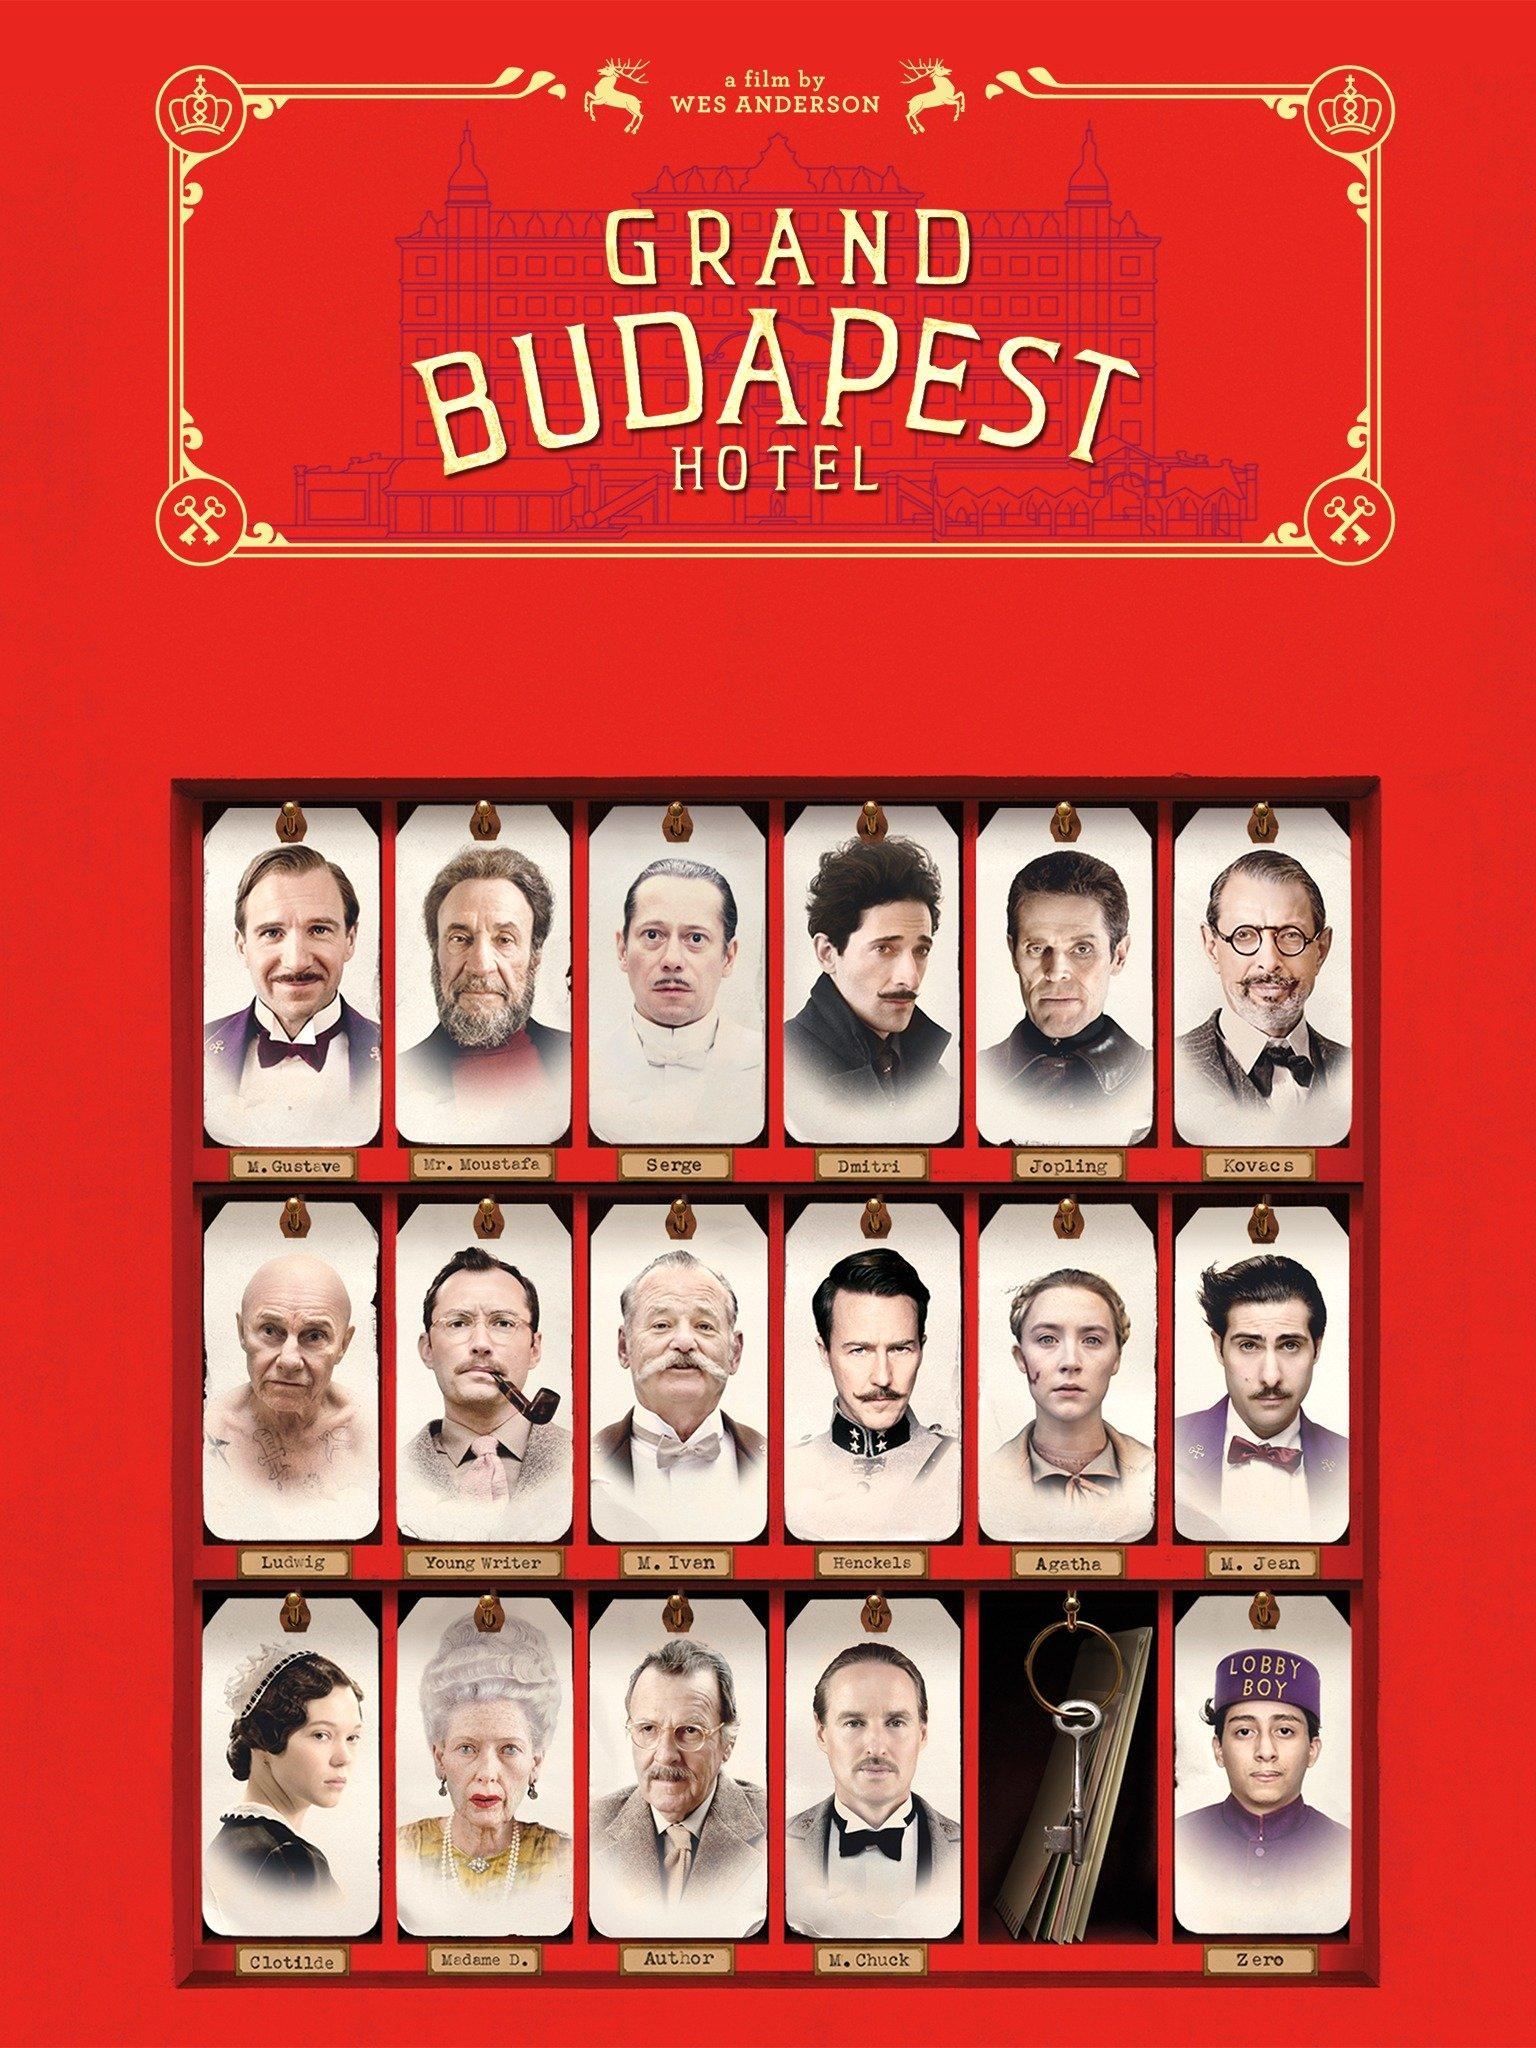 The Grand Budapest Hotel 2014 Rotten Tomatoes